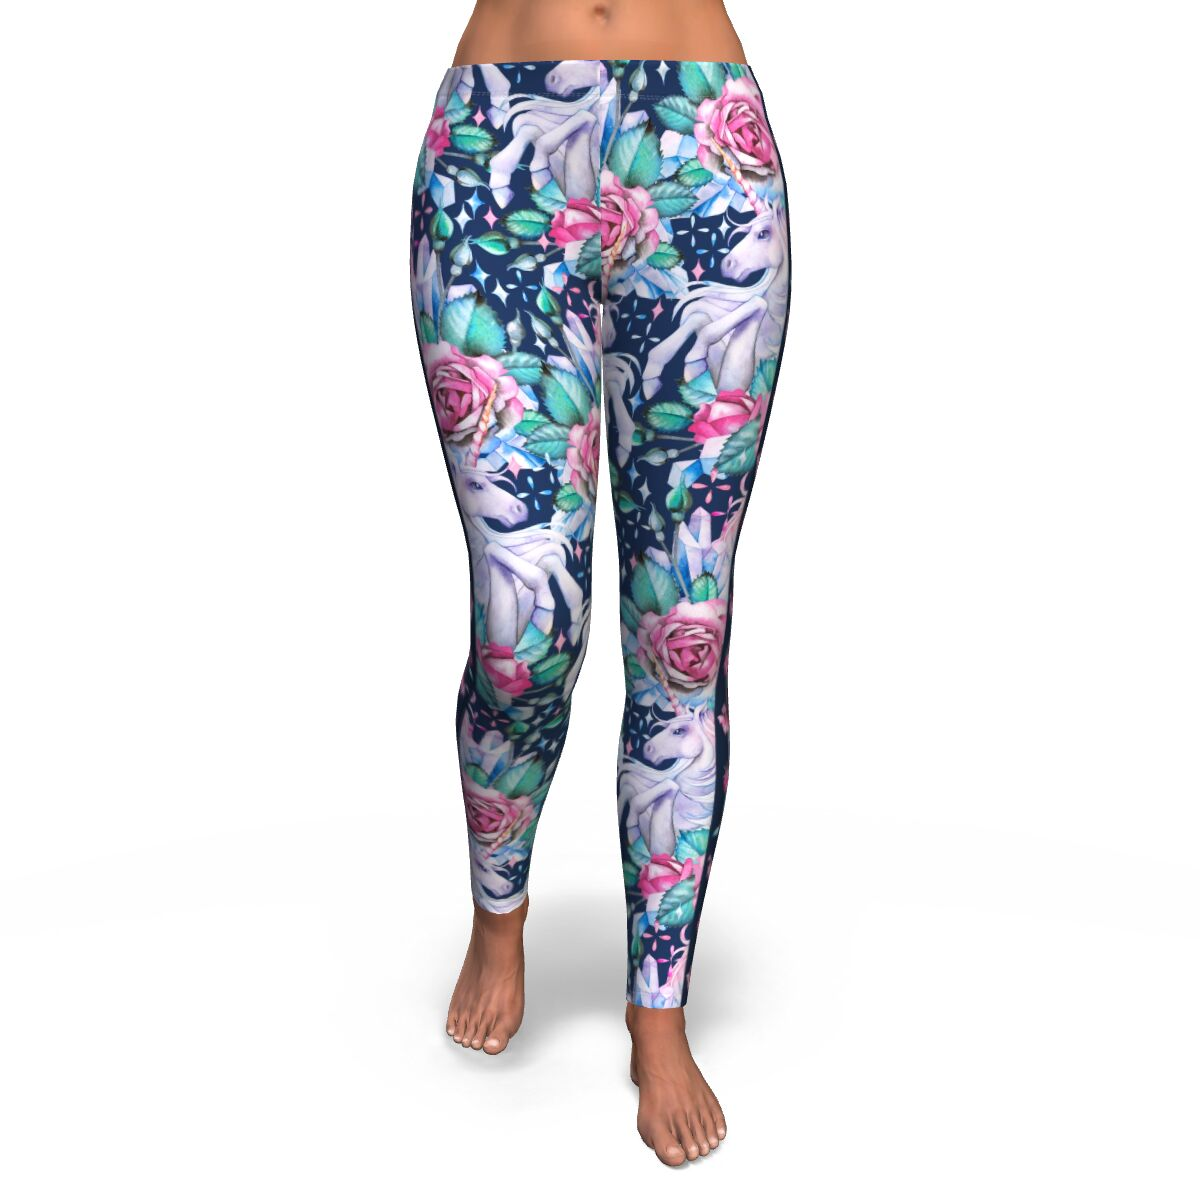 Unicorn Roses Yoga legging - XS - S - M - L - XL